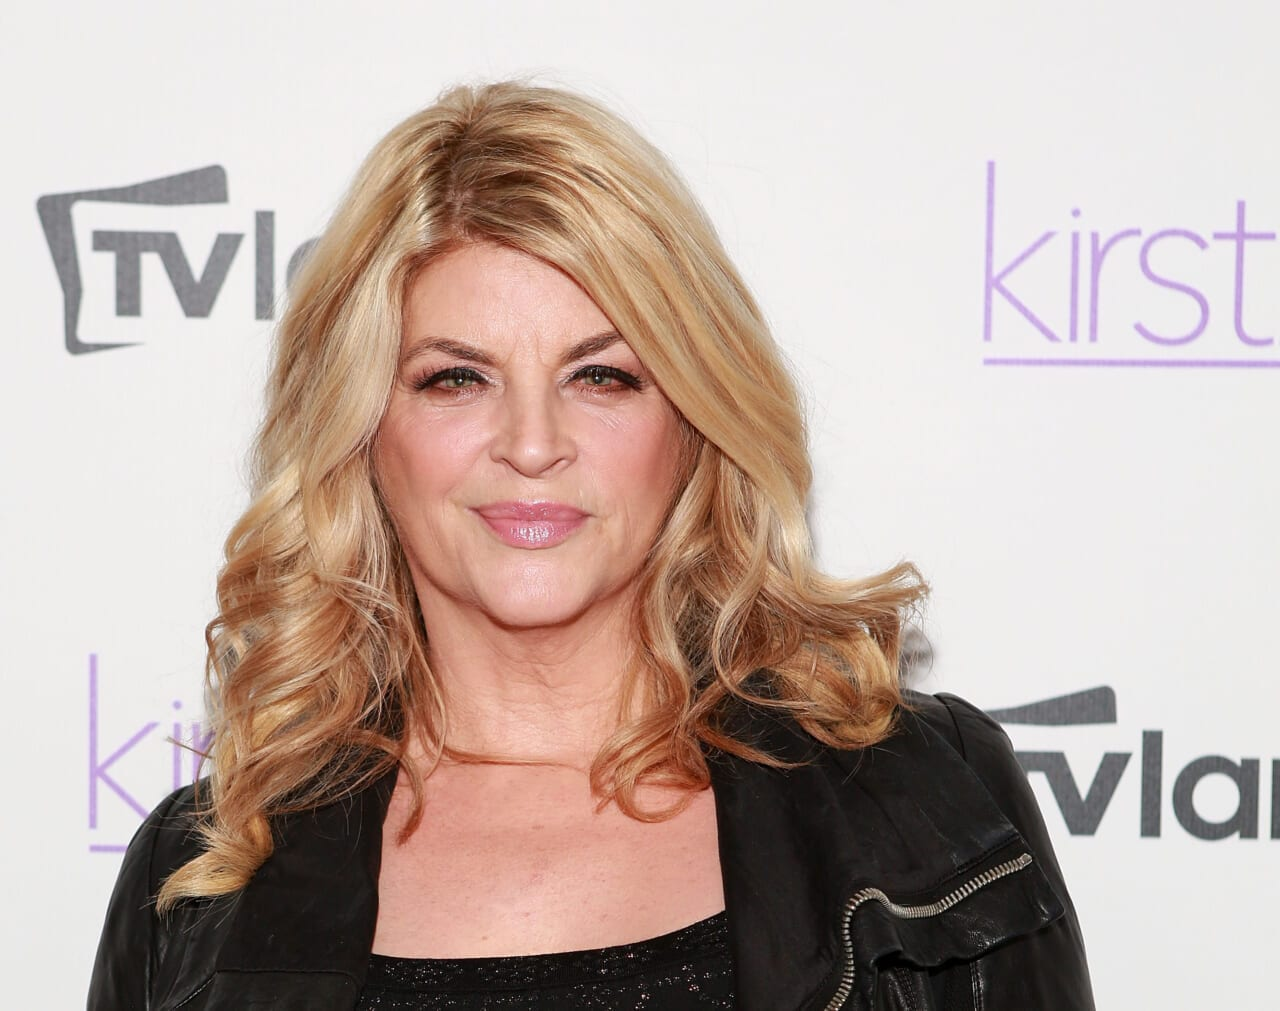 Kirstie Alley doubles down on Trump support, says she's voting for him because he's 'not a politician' - TheGrio